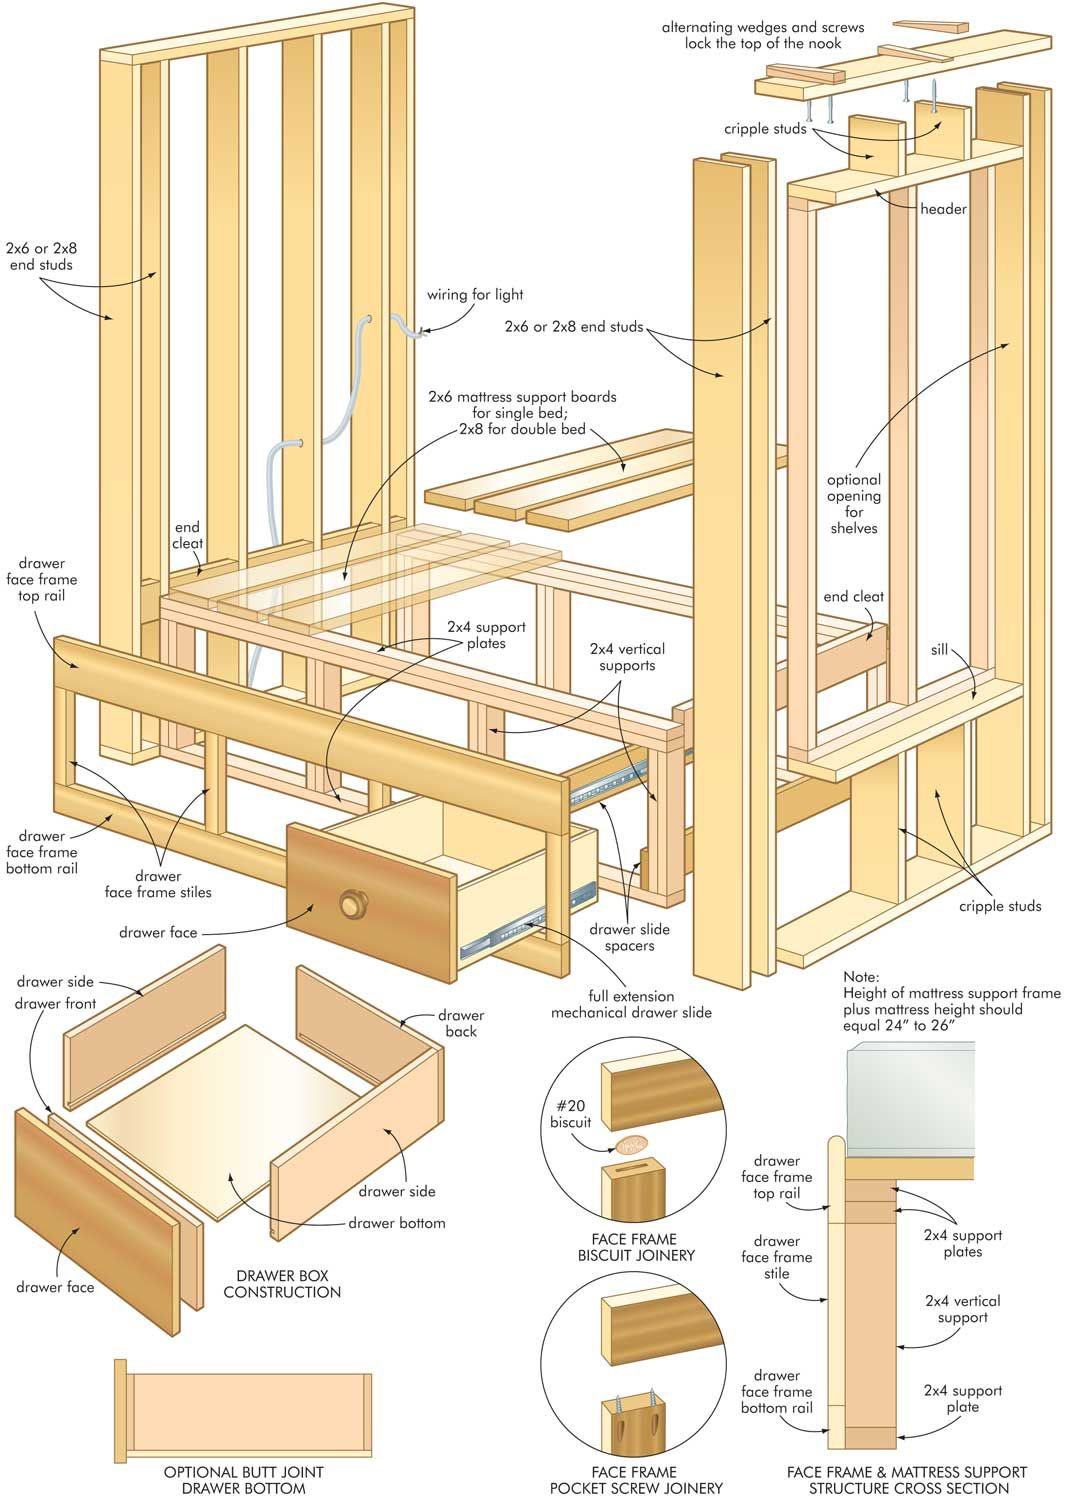 Diy wood bed frame plans - Construct A Cozy Homemade Built In Bed Diy